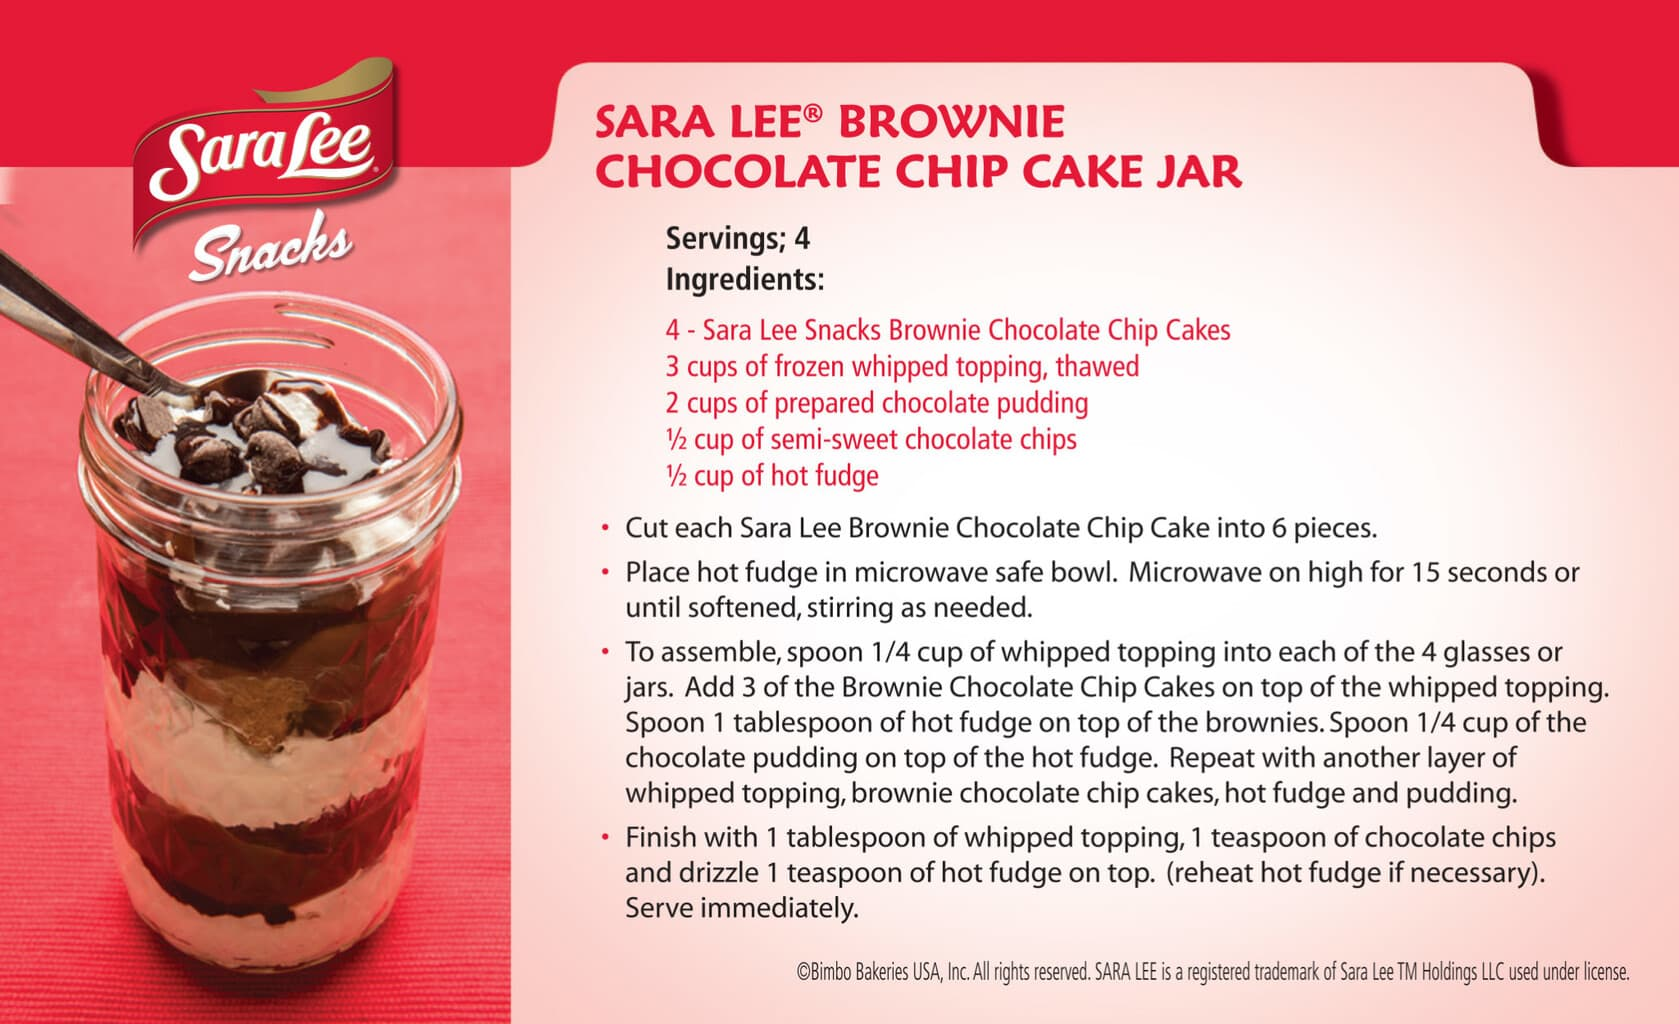 Let Entenmann's and Sara Lee Snacks Help Make Your Holidays Easier